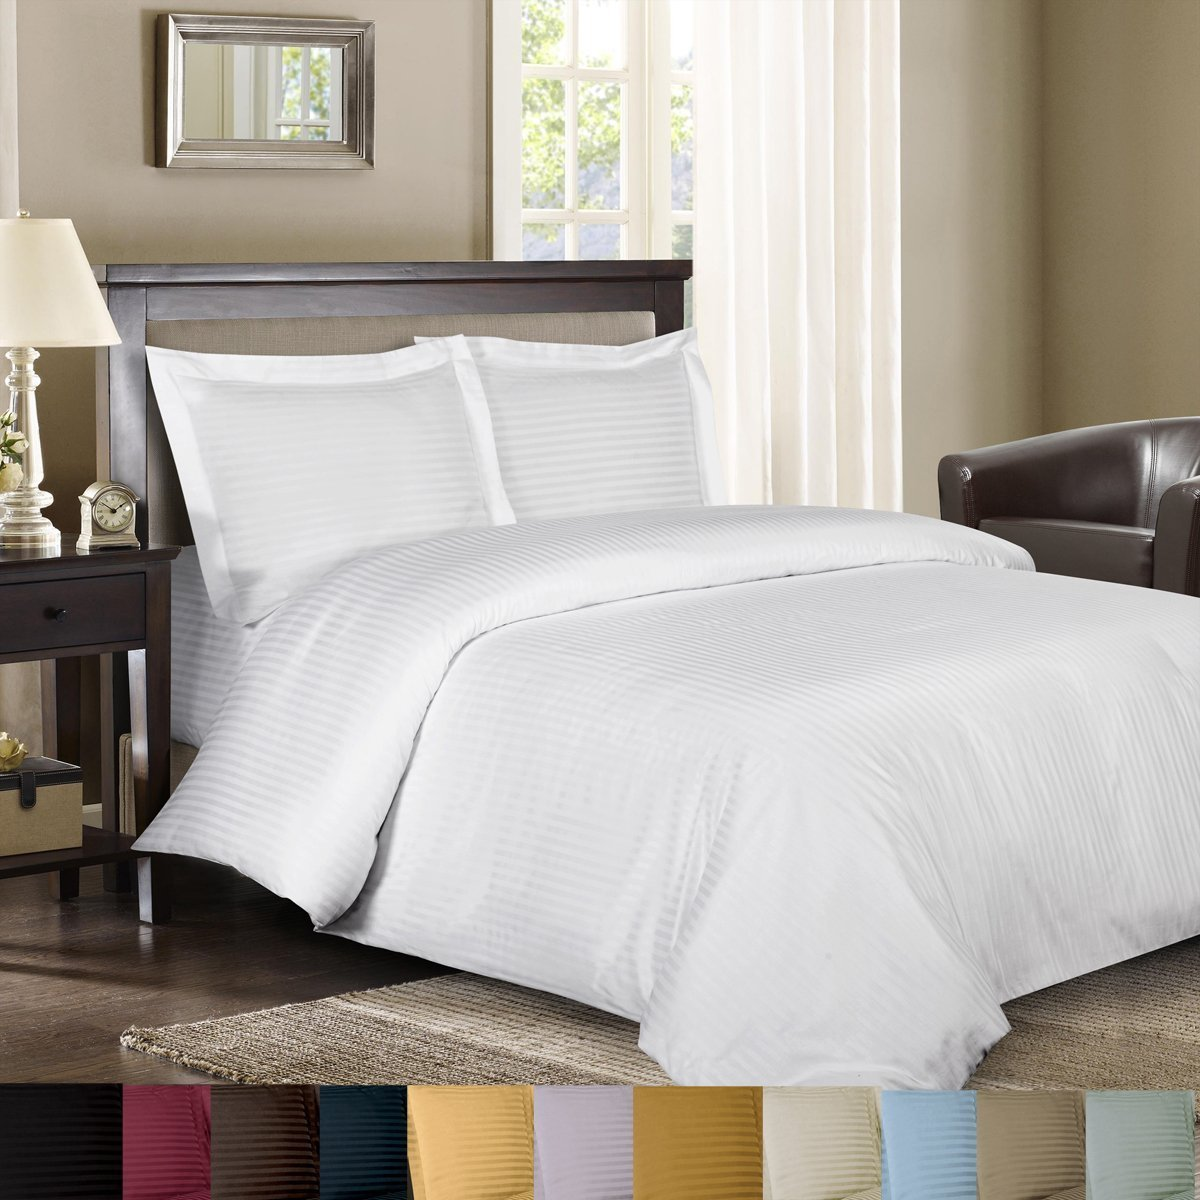 Royal Hotel Sateen Striped 300-Thread-Count 3-Piece Cotton King Duvet-Cover Set, White